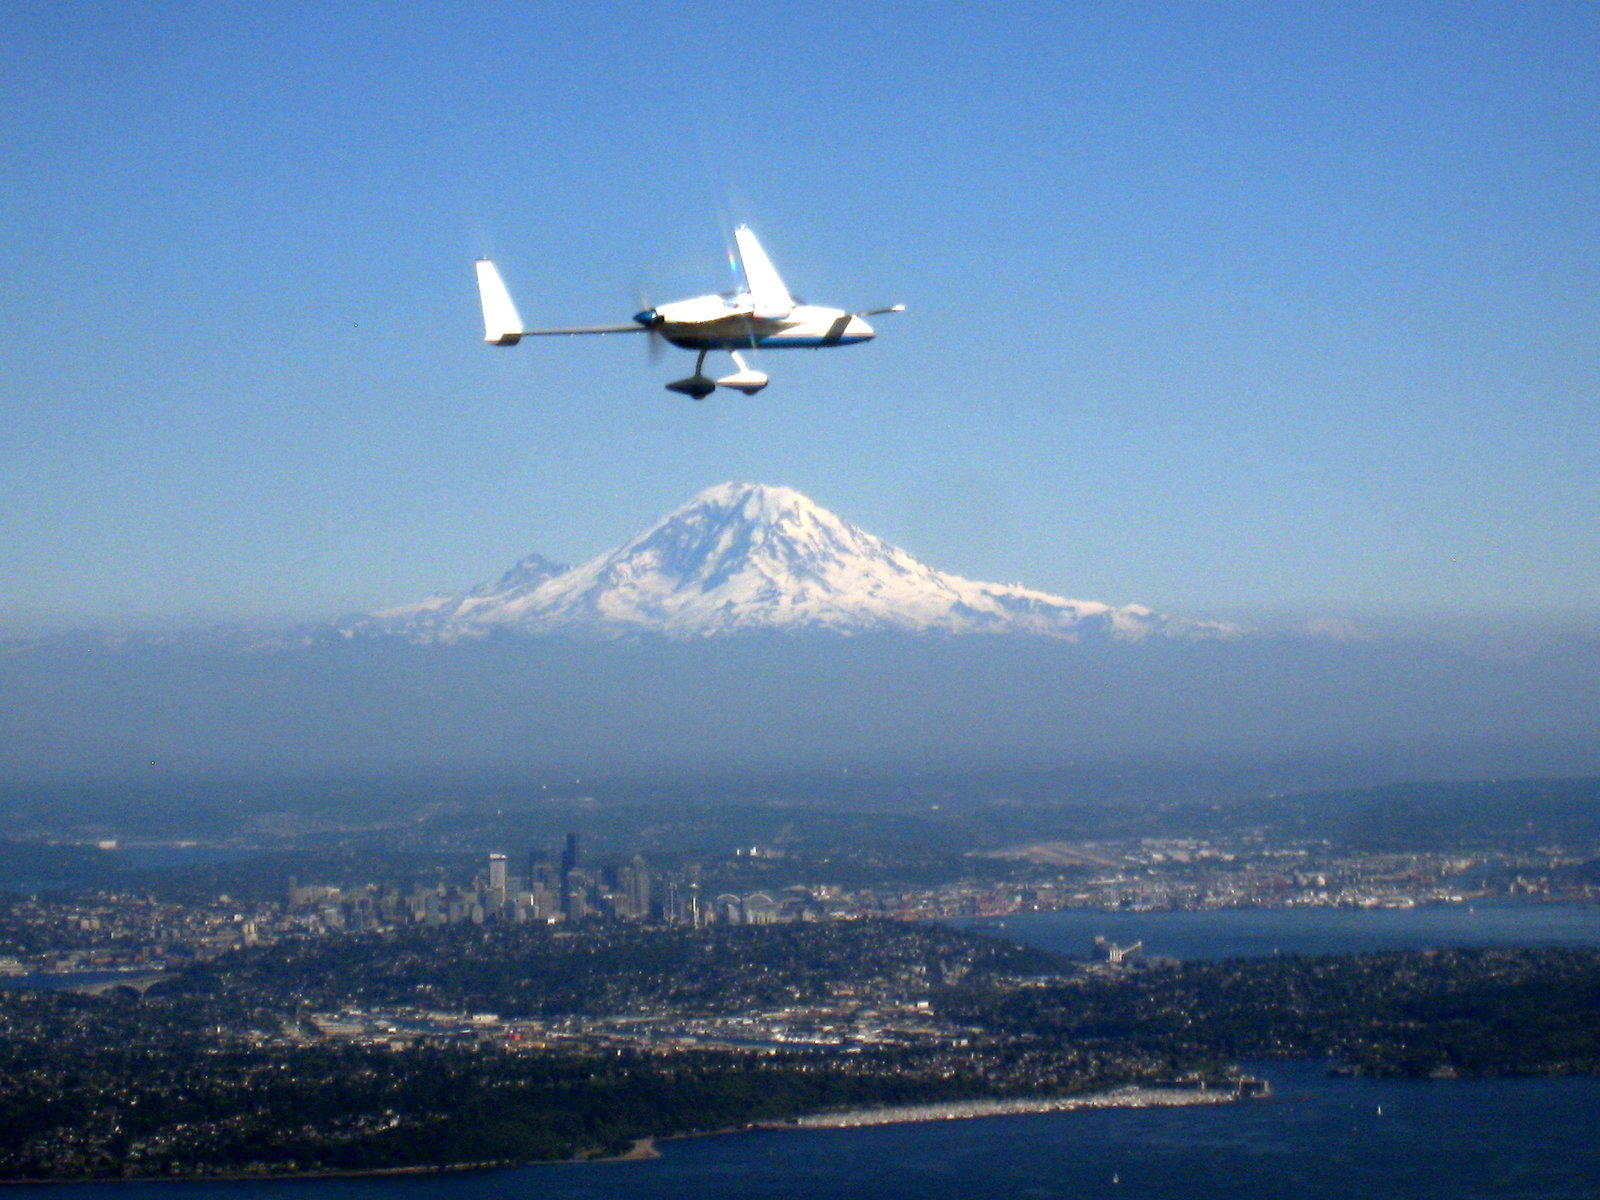 Stag Mike Sabourin's Long EZ over Seattle And Mt Rainier 140710c